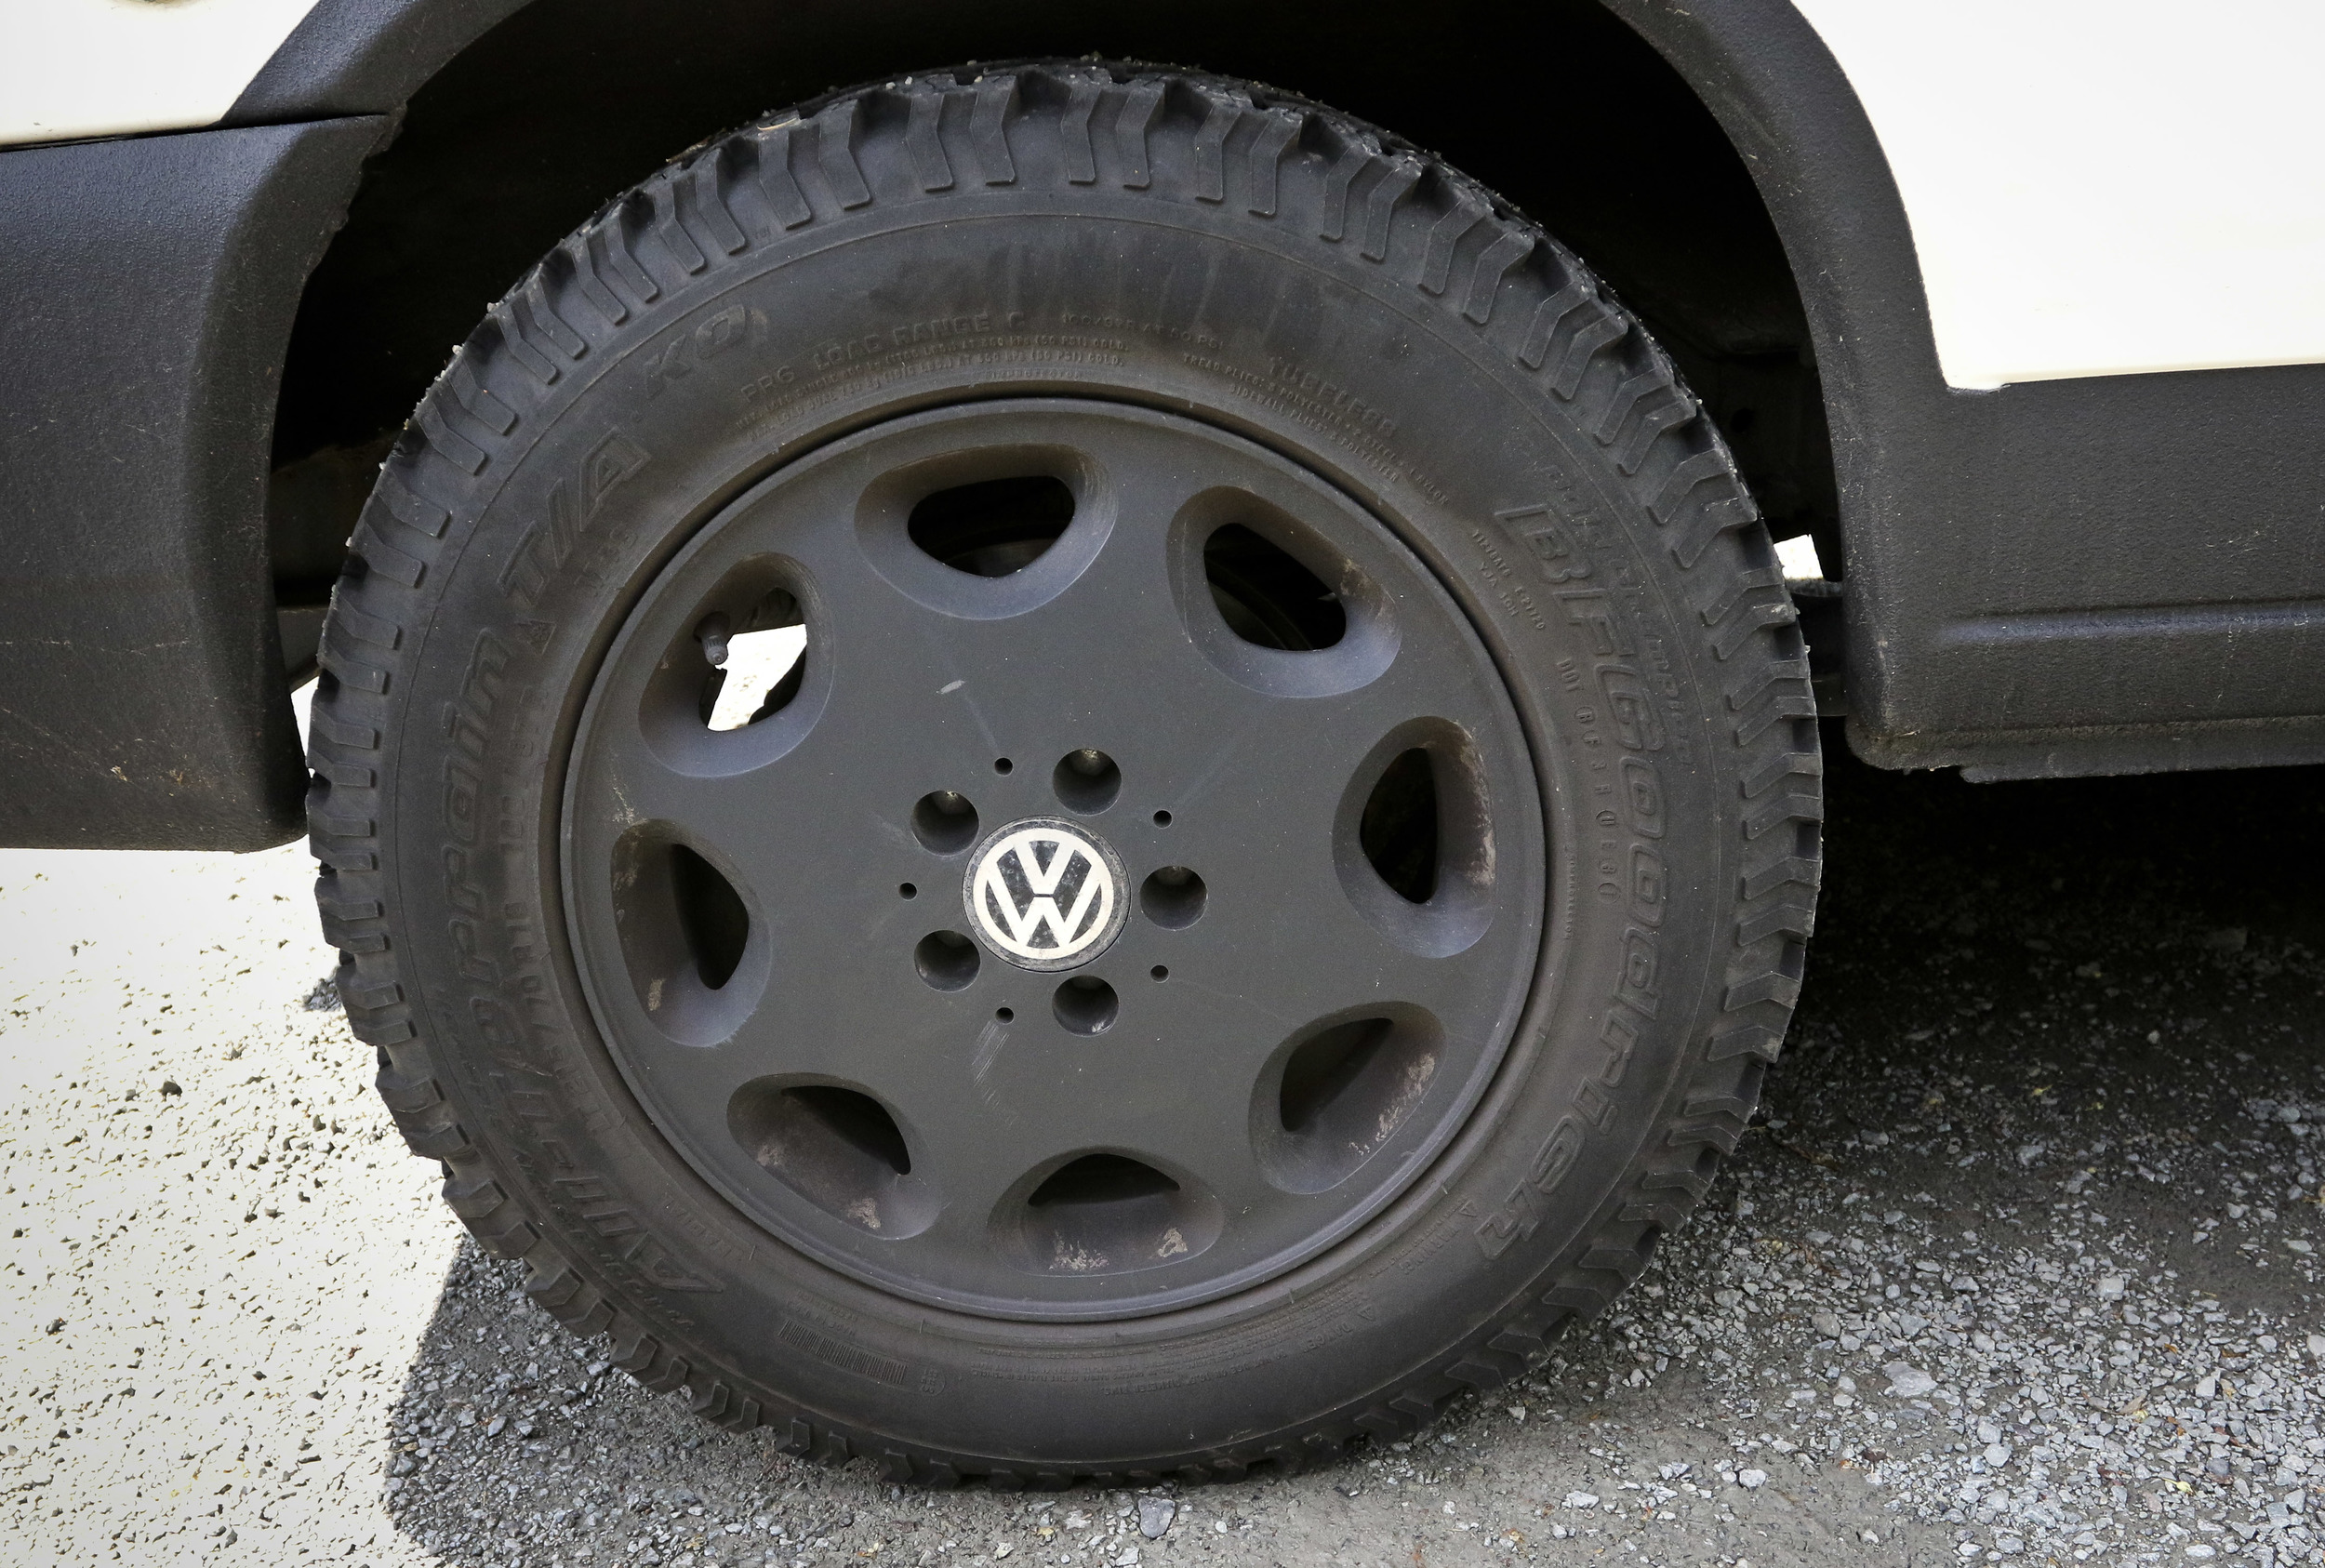 Bridgestone A/T tires have increased performance off paved roads.  The rims were powder coated matte black.